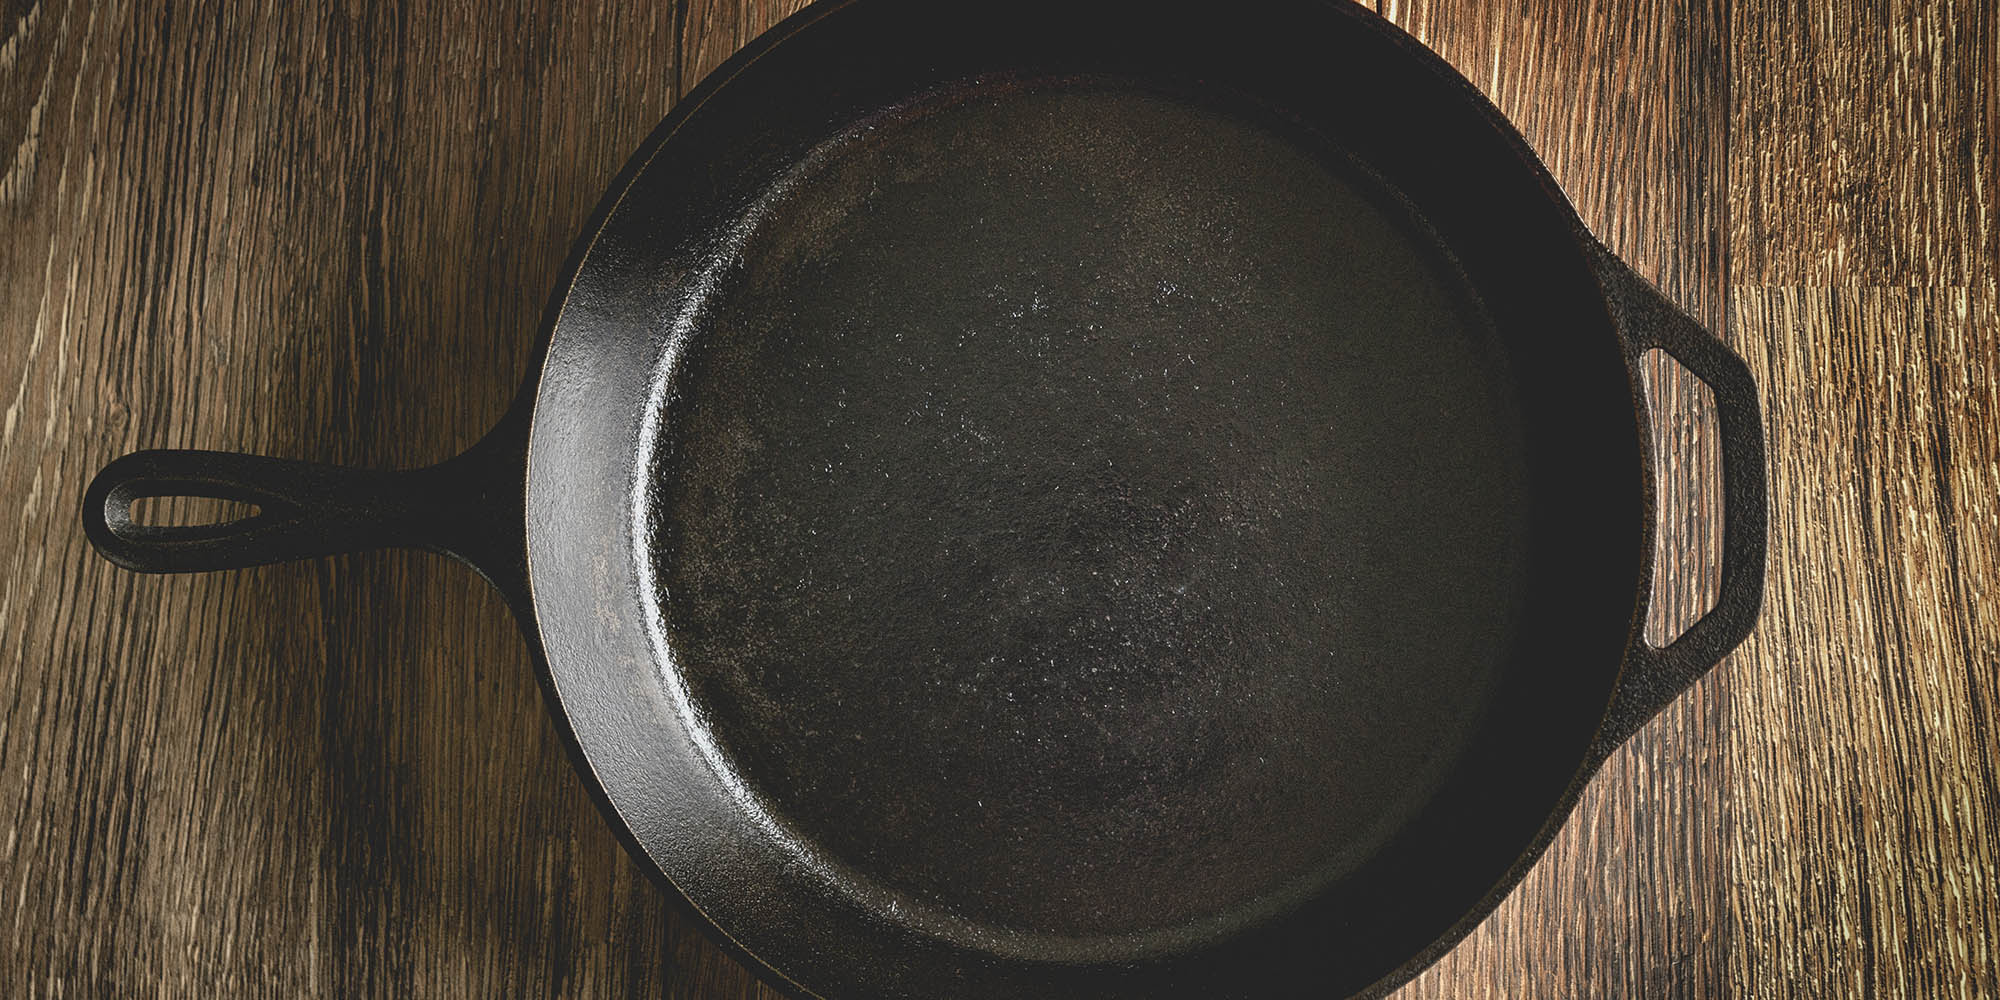 How to Clean Cast-Iron Pans